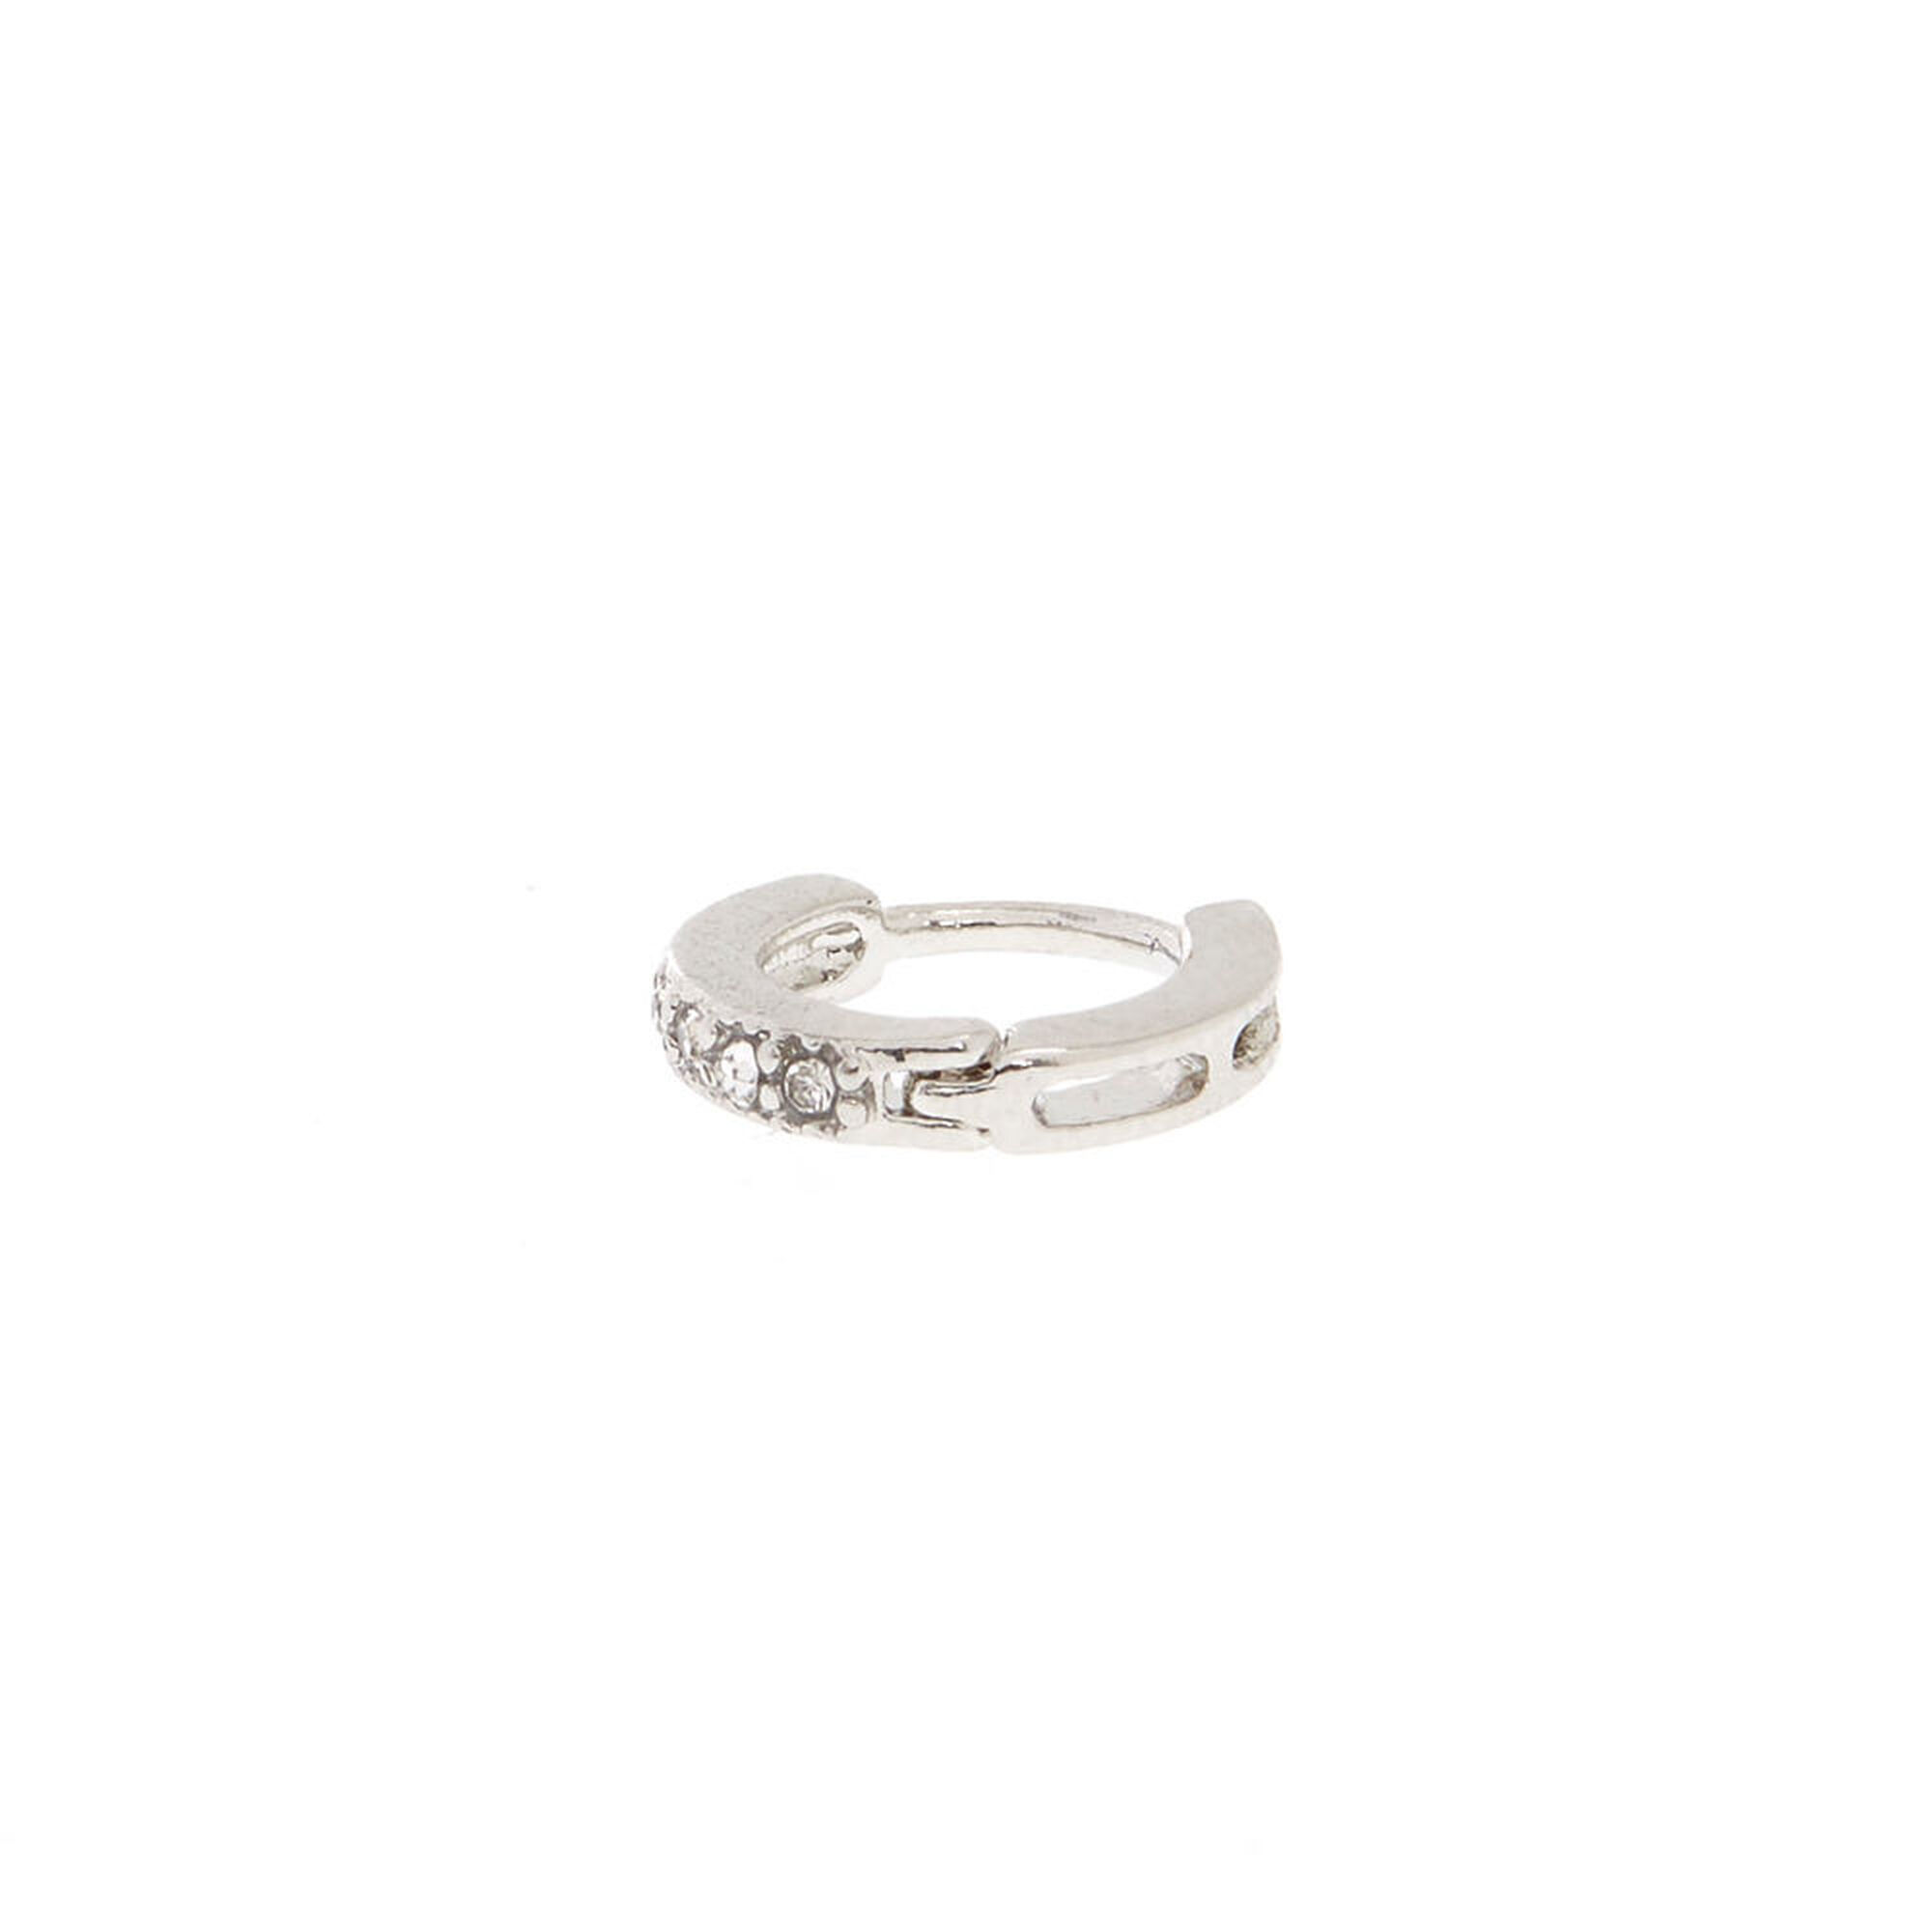 d en hoops rings in listing button sterling this diamond cartilage item belly cut silver shaped il like